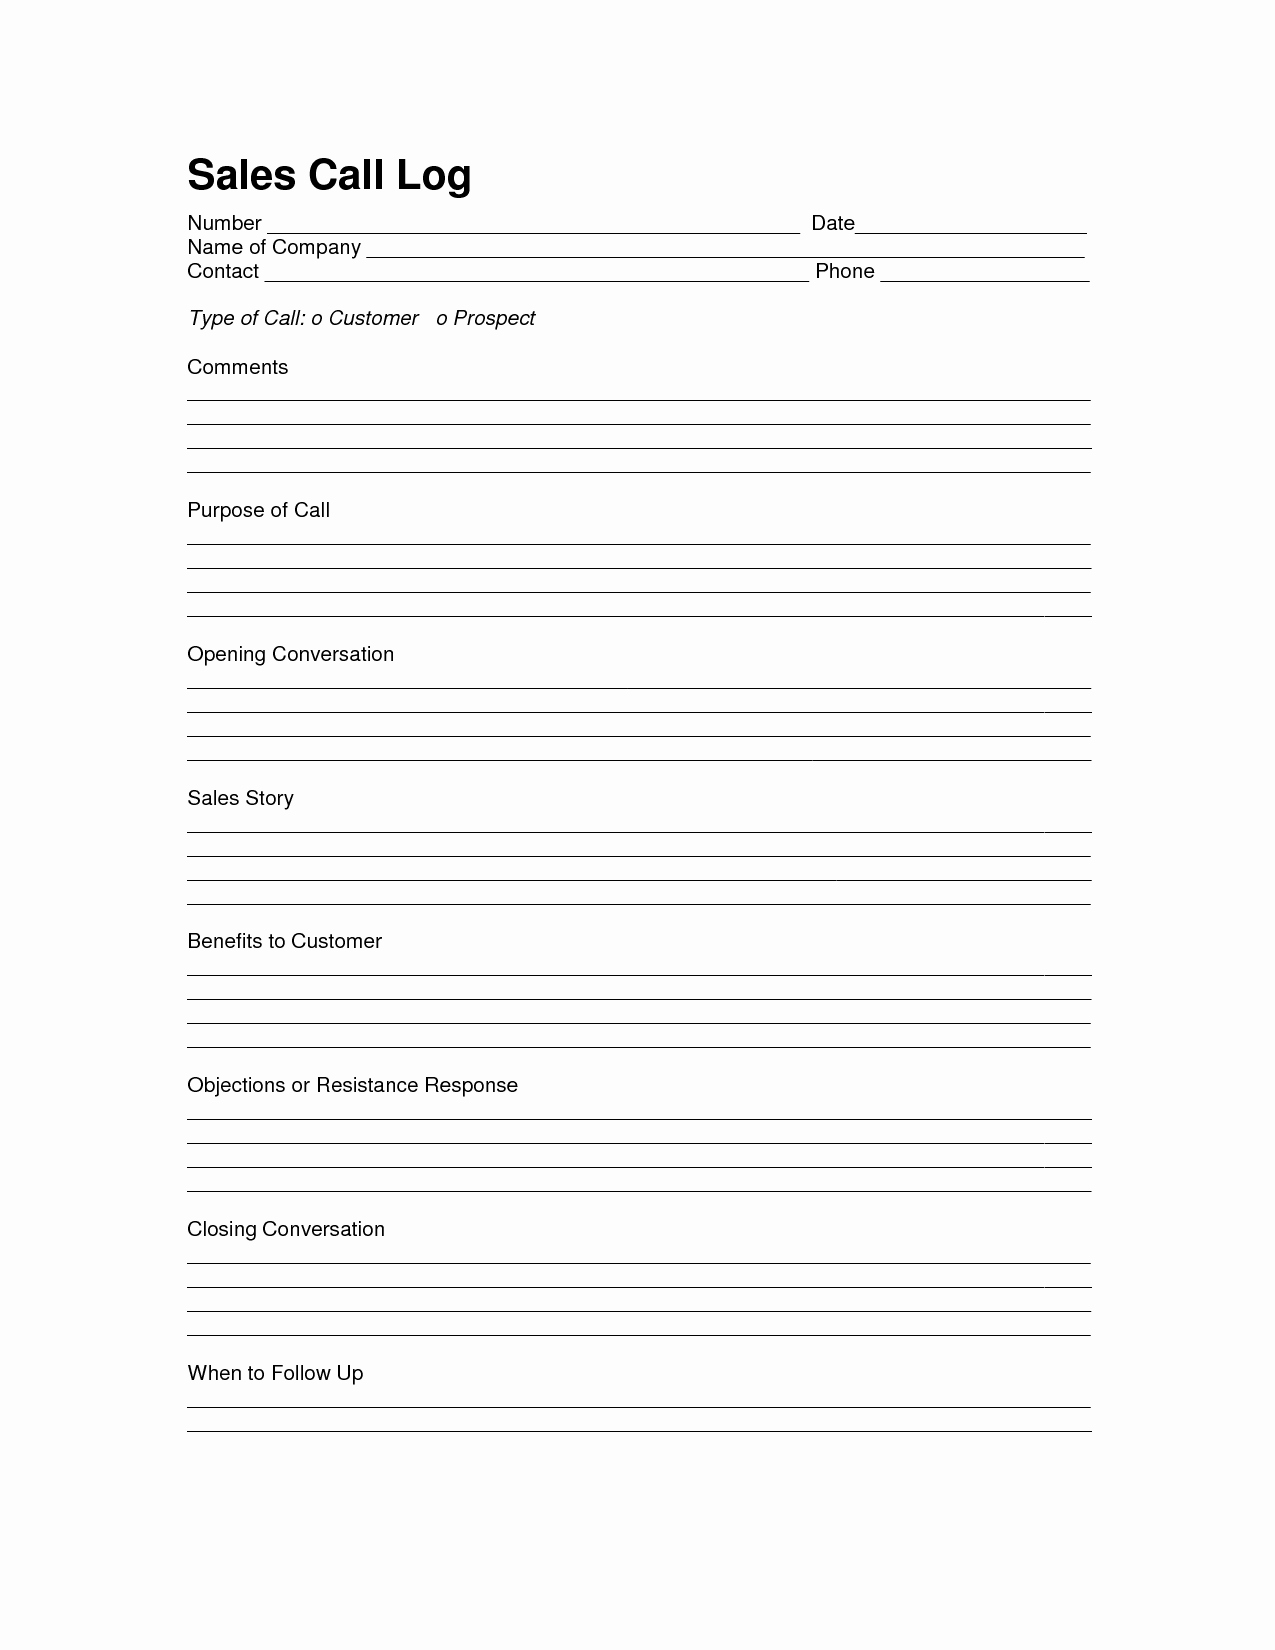 Sales Call Sheet Template Free Inspirational Sales Log Sheet Template Sales Call Log Template